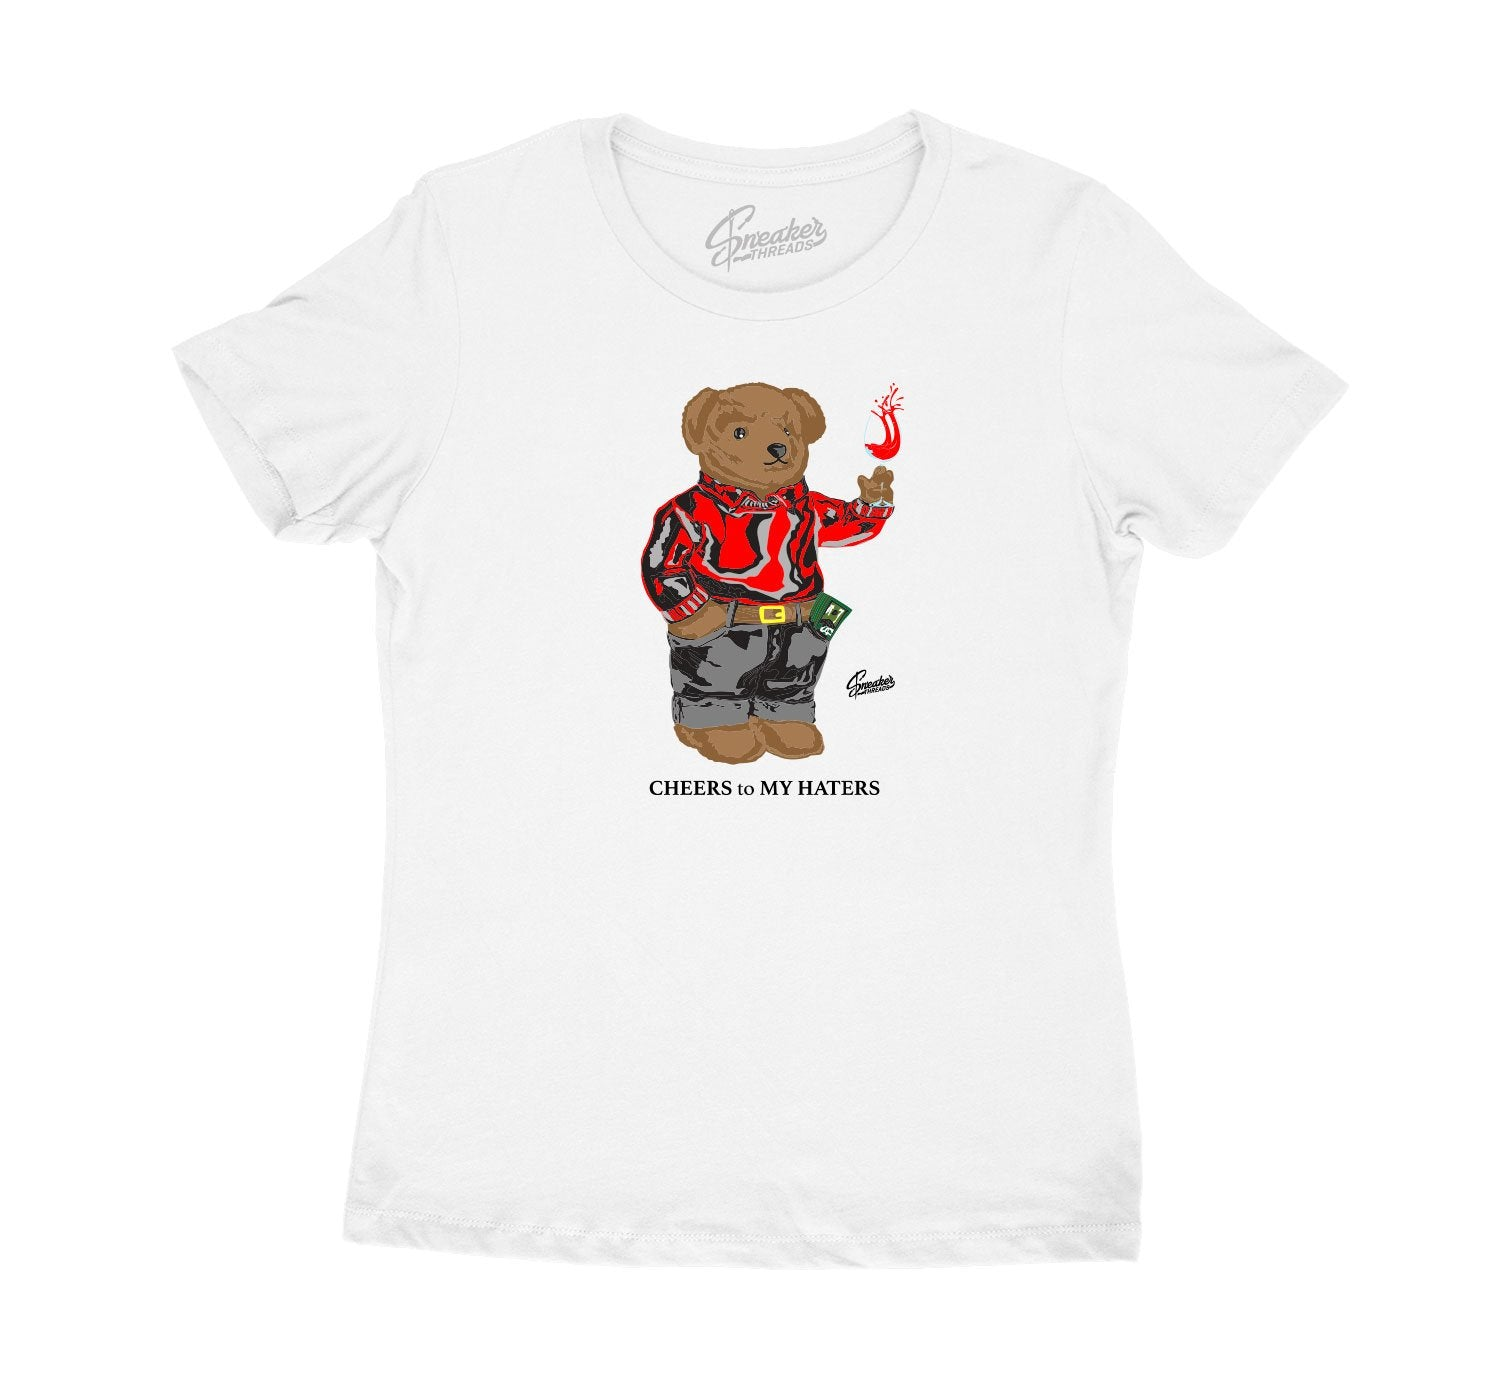 womens t shirts created to match the Jordan 11 bred retro sneakers